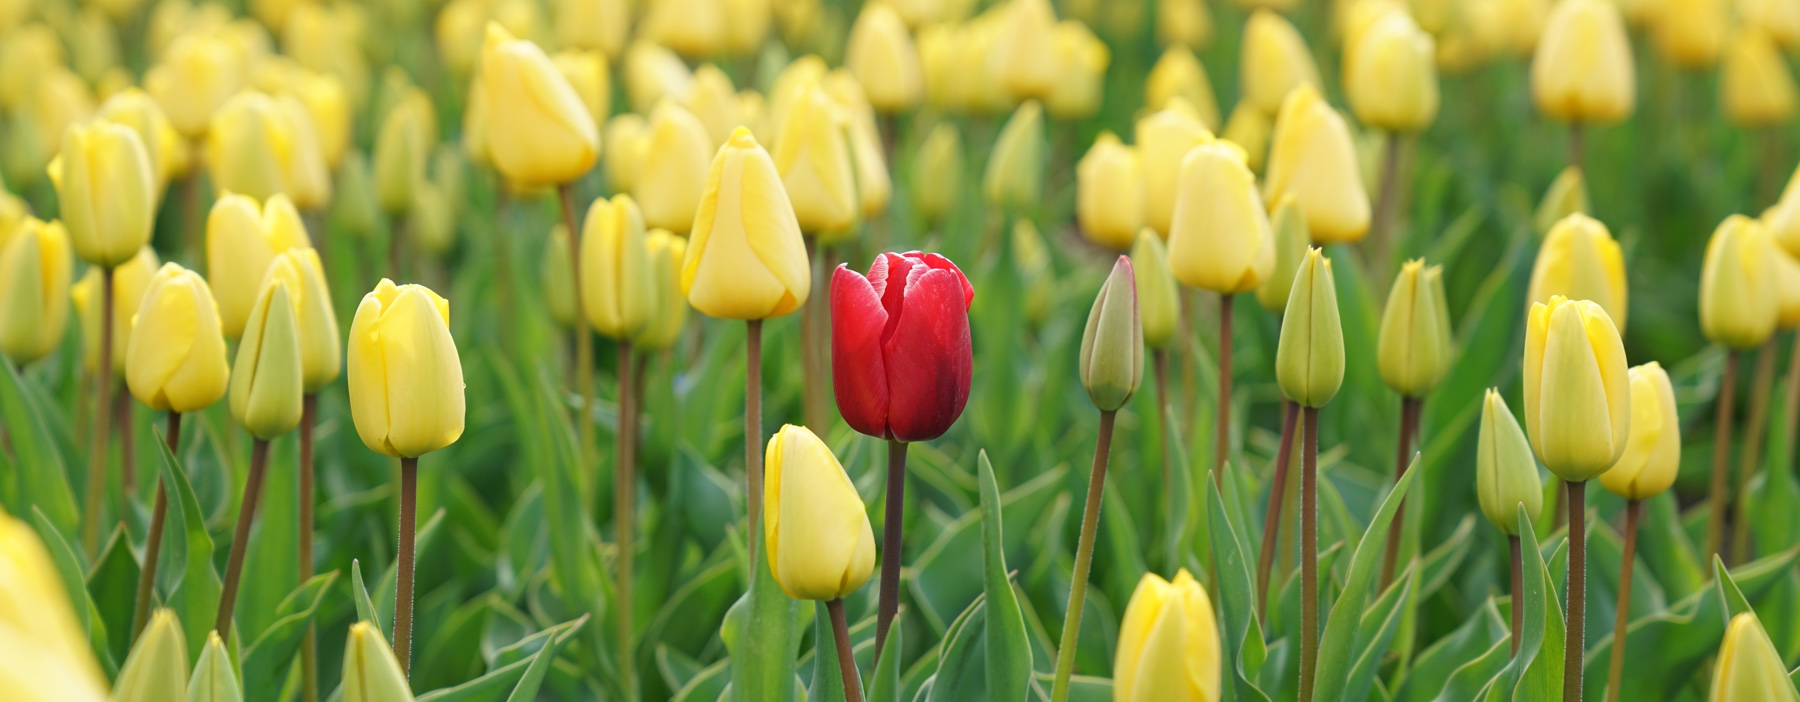 Are you marketing to stand out or stand back?